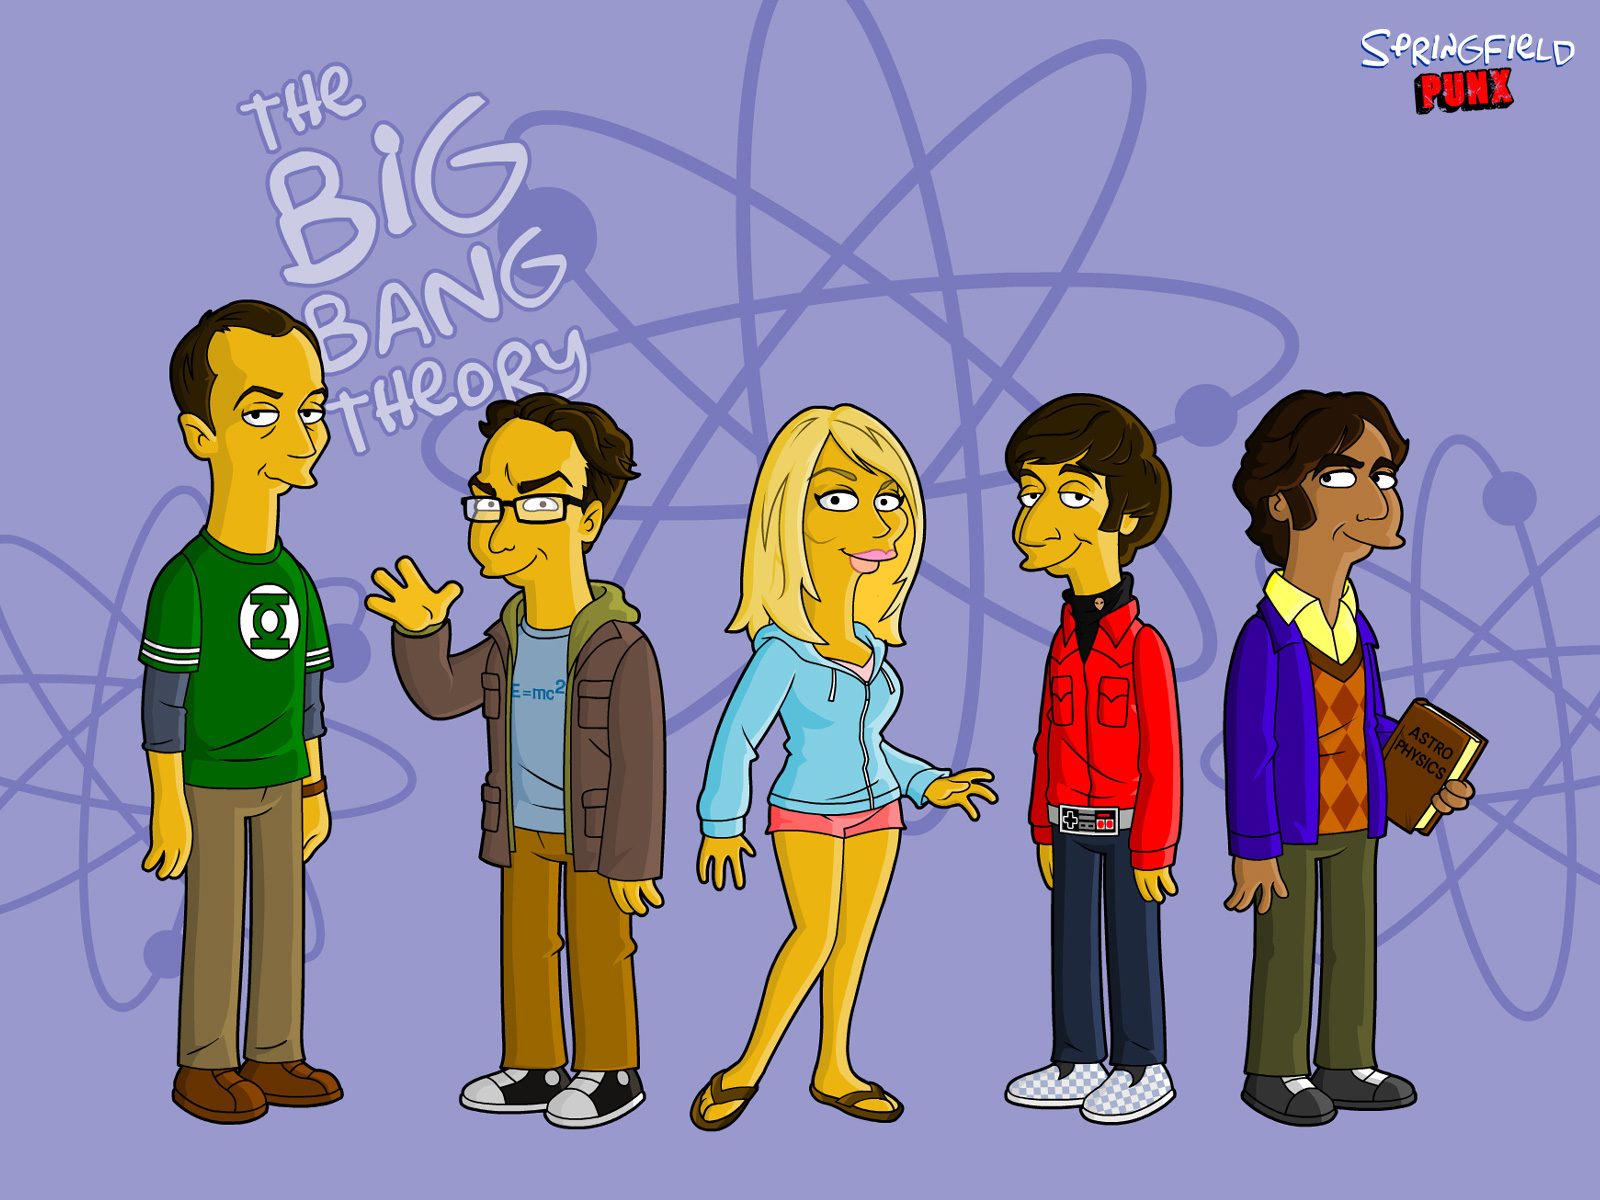 The Big Bang Theory Funny  Wallpaper, High Definition, High Quality